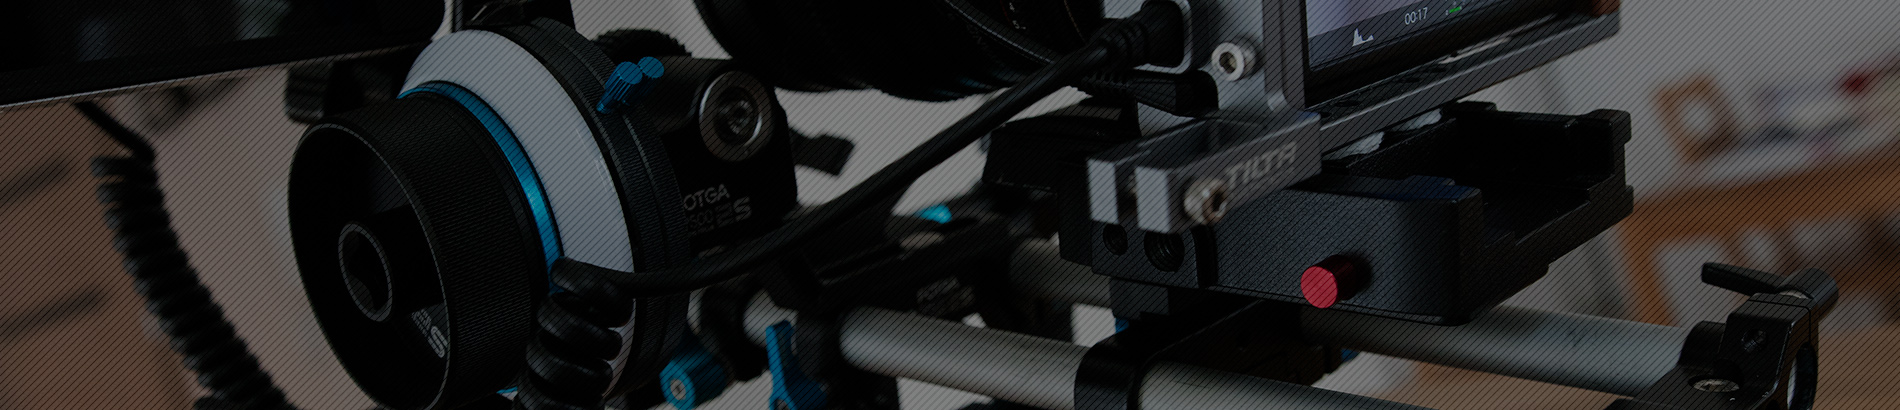 Tilta Cage Baseplate Mod for BMPCC